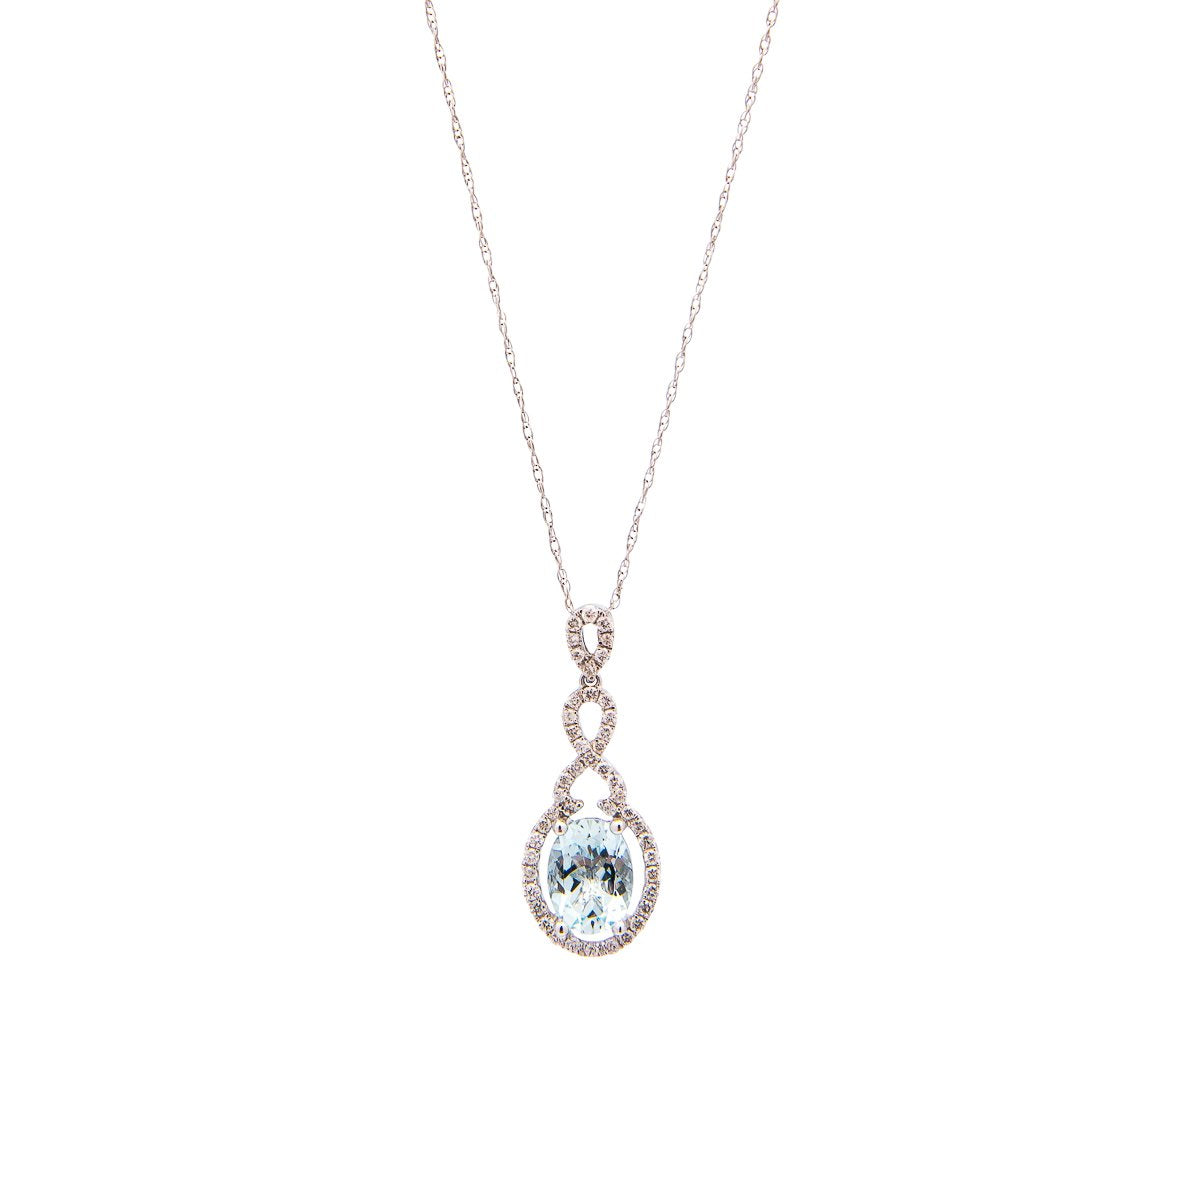 Sabel Collection 14K White Gold Oval Aquamarine and Diamond Dangle Pendant